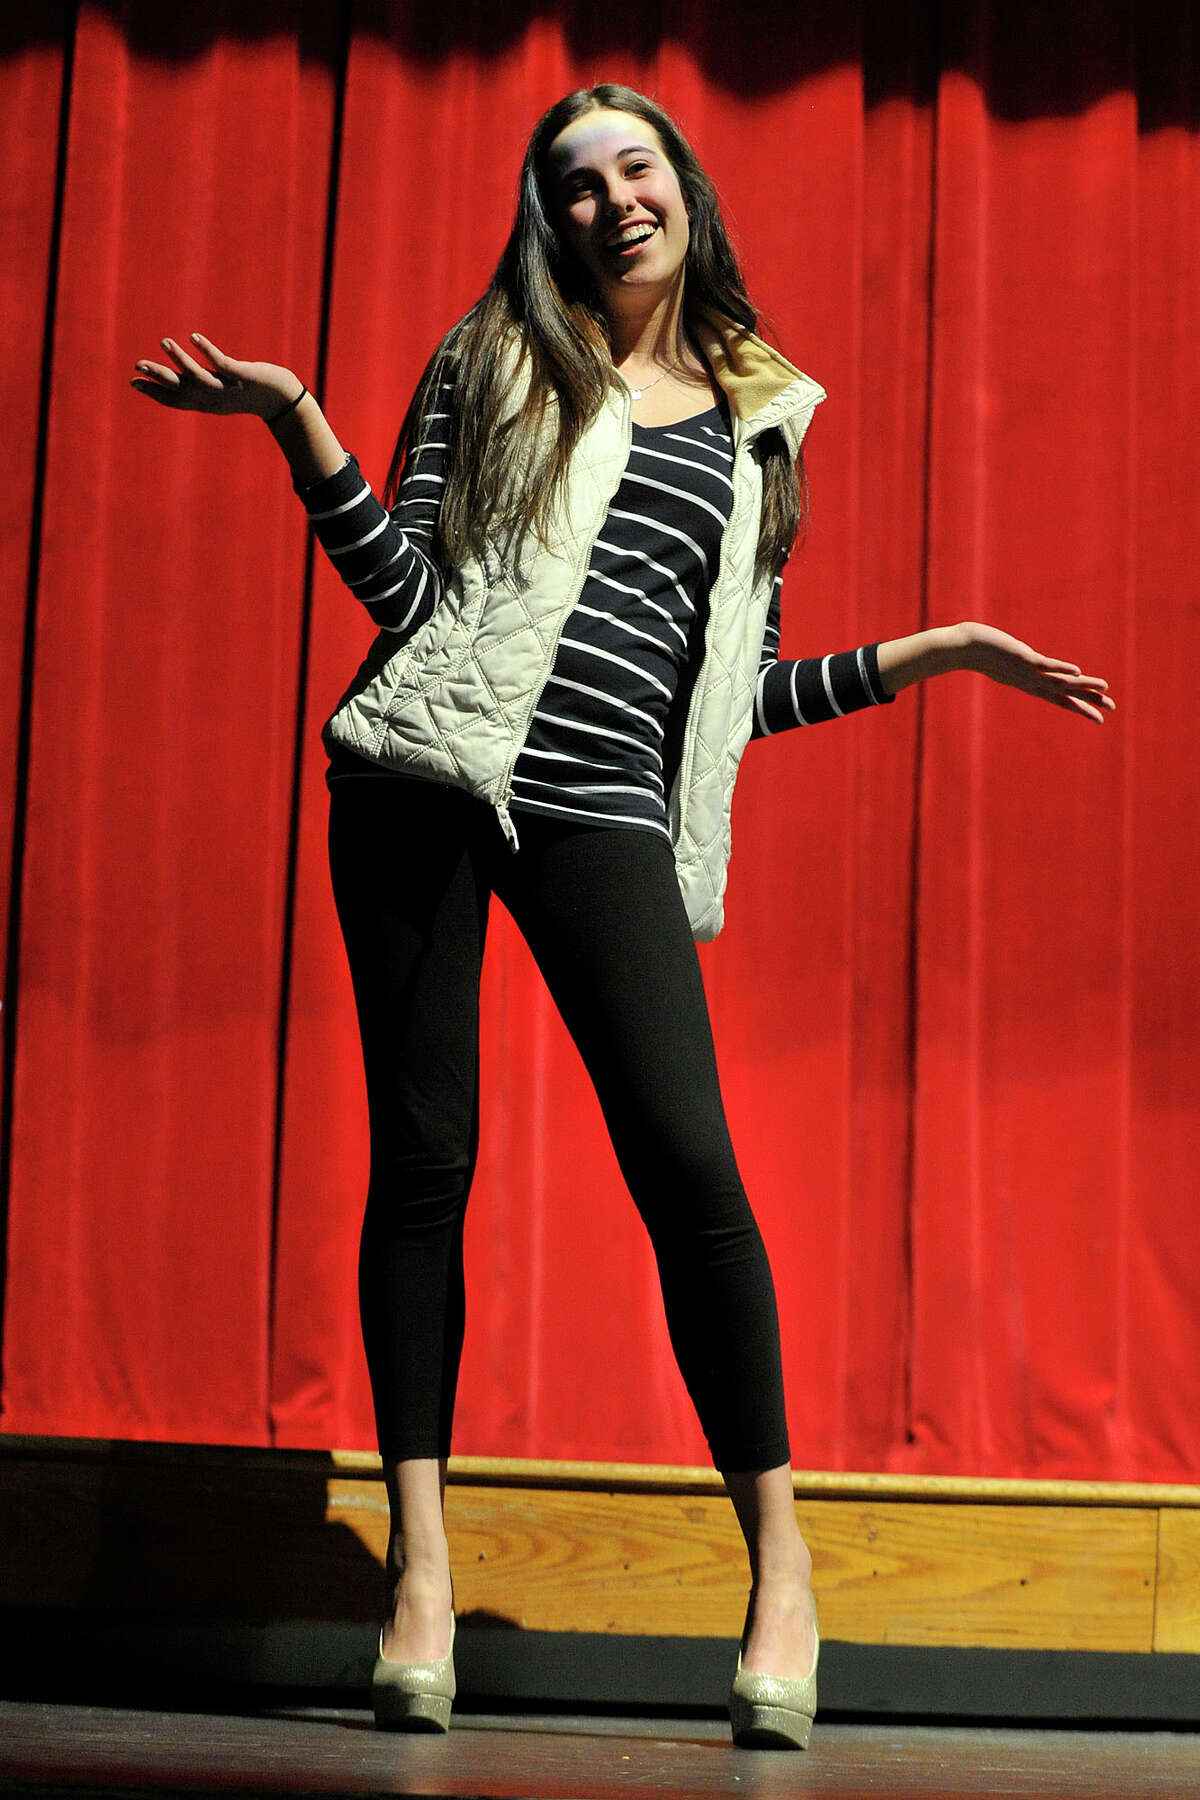 Senior Nicole May strikes a pose during the Fashion Show fundraiser dress rehearsal at the Stamford High School auditorium in Stamford, Conn., on Tuesday, March 18, 2014. Members of the senior and junior class will show off their fashions from four local vendors on Thursday at 7 p.m. at the high school. Half of the proceeds will benefit the senior class prom after-party, which is June 6, and the other half of the proceeds go towards next year's after-prom party.